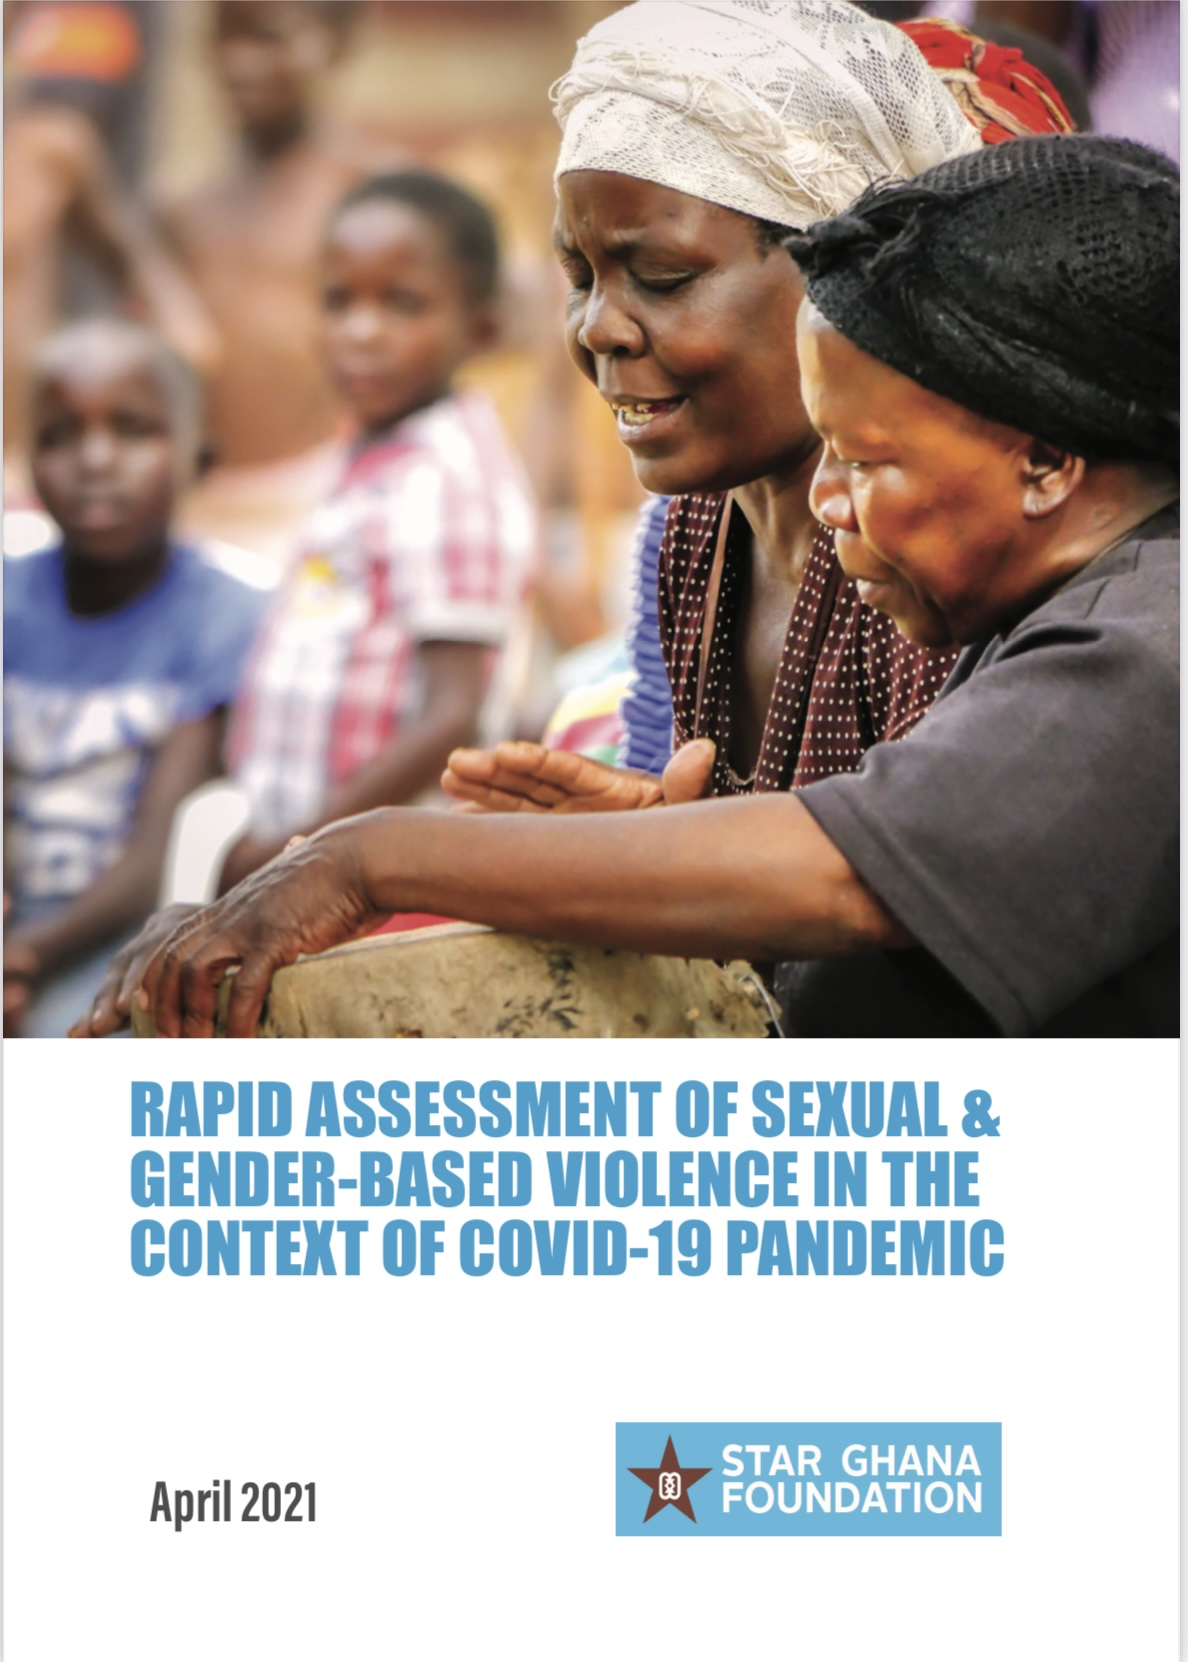 Rapid Assessment of Sexual and Gender-Based Violence in the Context of COVID-19 Pandemic